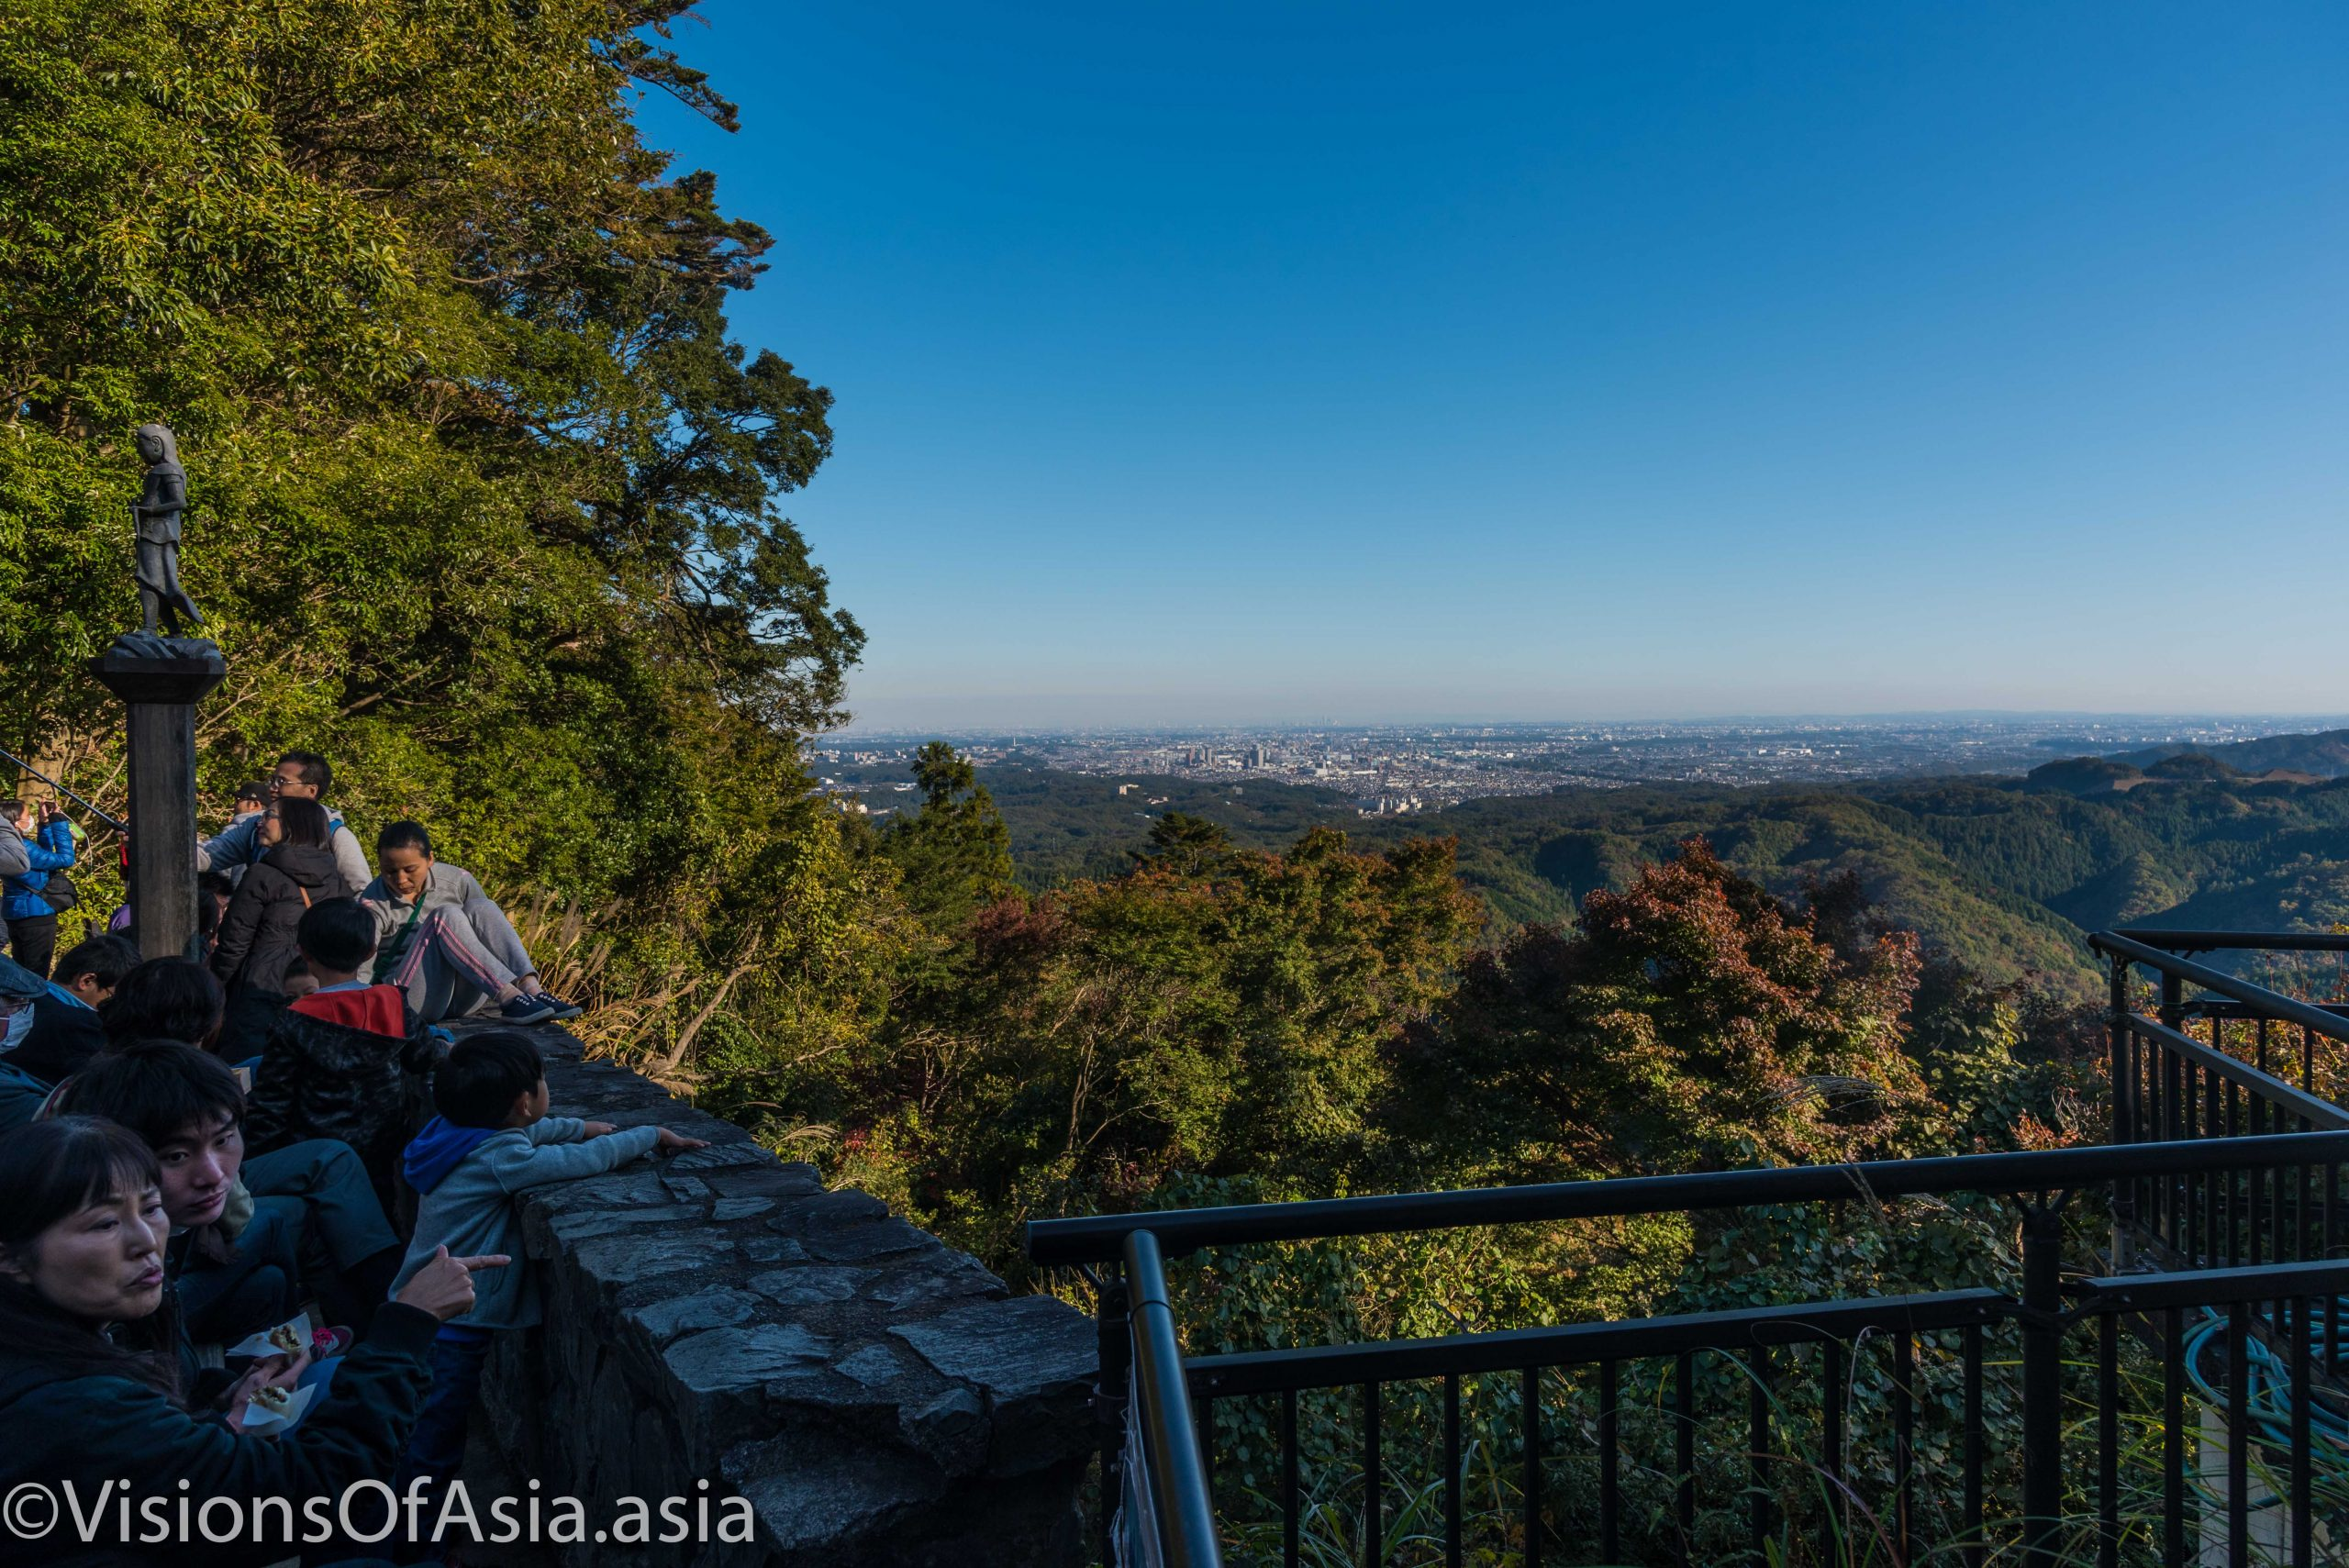 Barefooting in Japan: barefoot hike on Mount Takao